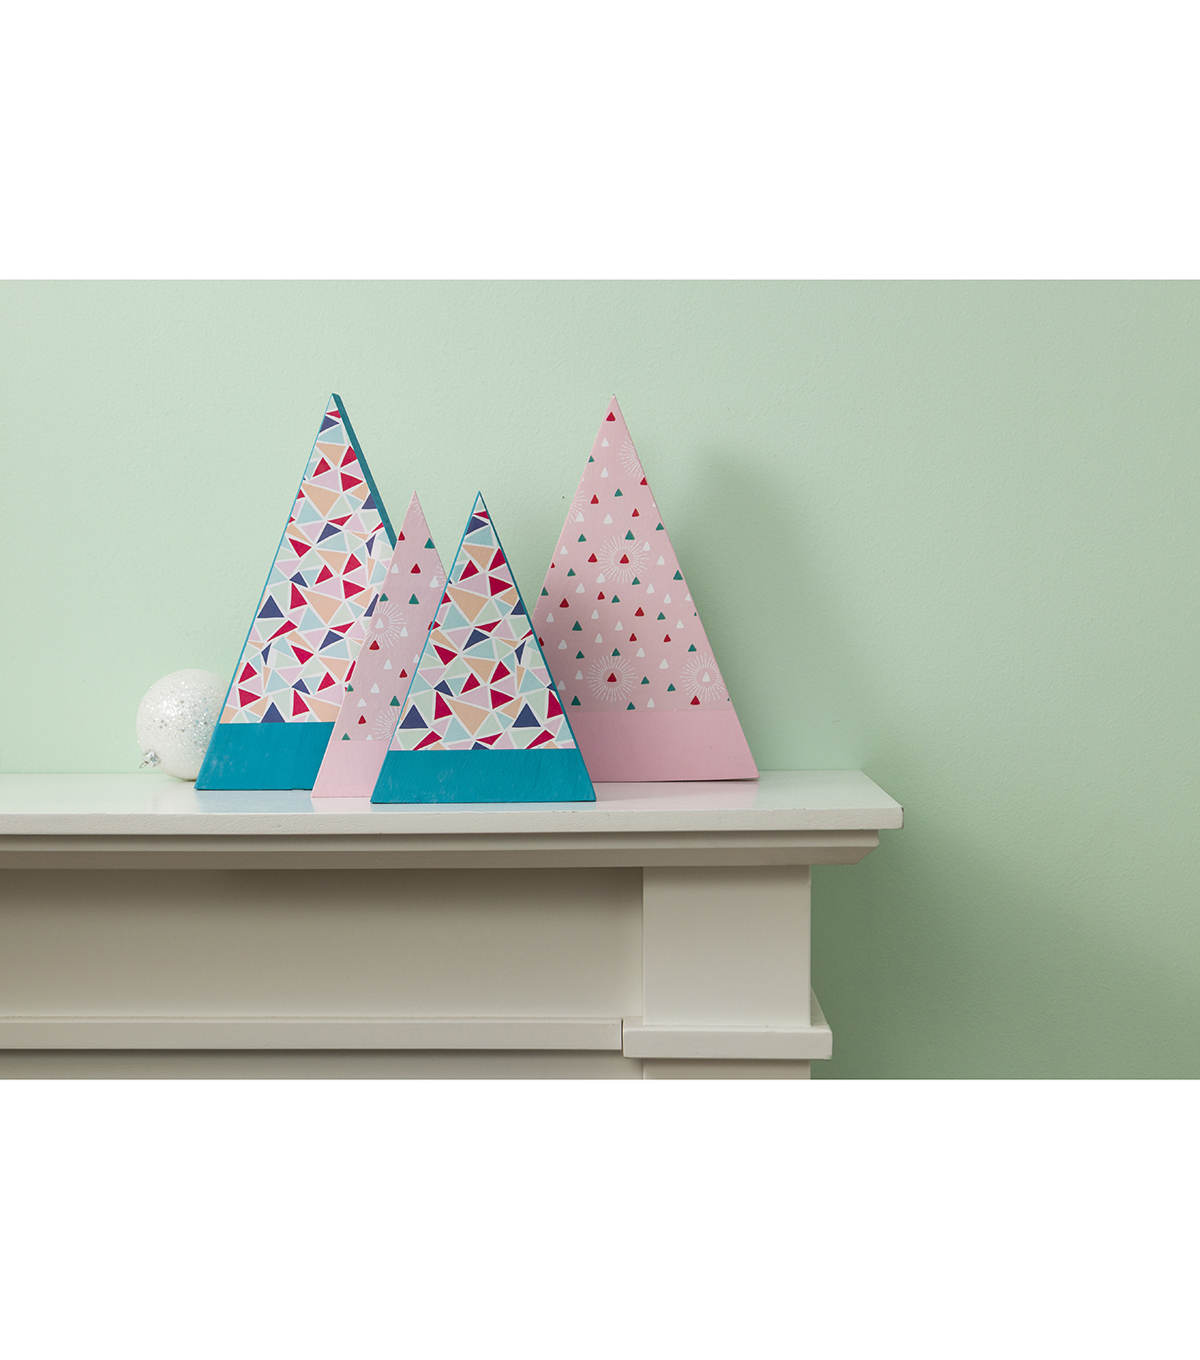 Cricut Premium Vinyl Patterned Hostess with the Mostess-Modern Cheer